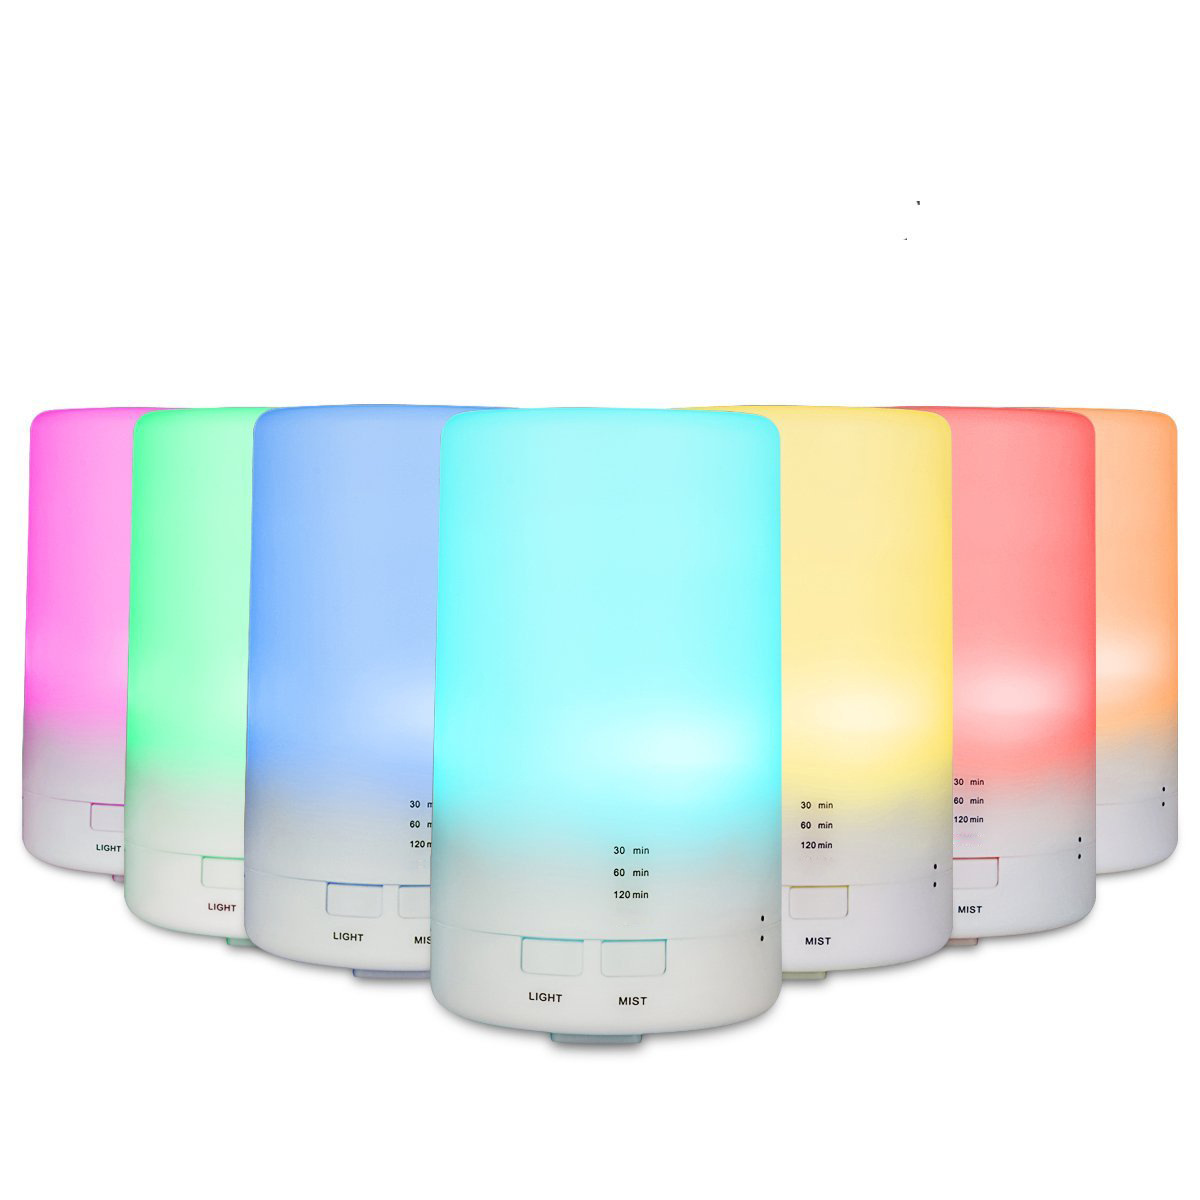 7 Color Changing LED Light Essential Oil Diffuser 100ML Mini Ultrasonic Cool Mist Air Humidifier for Car Aroma Mist Maker crdc air humidifier ultrasonic 100ml aroma diffuser glass essential oil diffuser mist maker with 7 colors changing led light